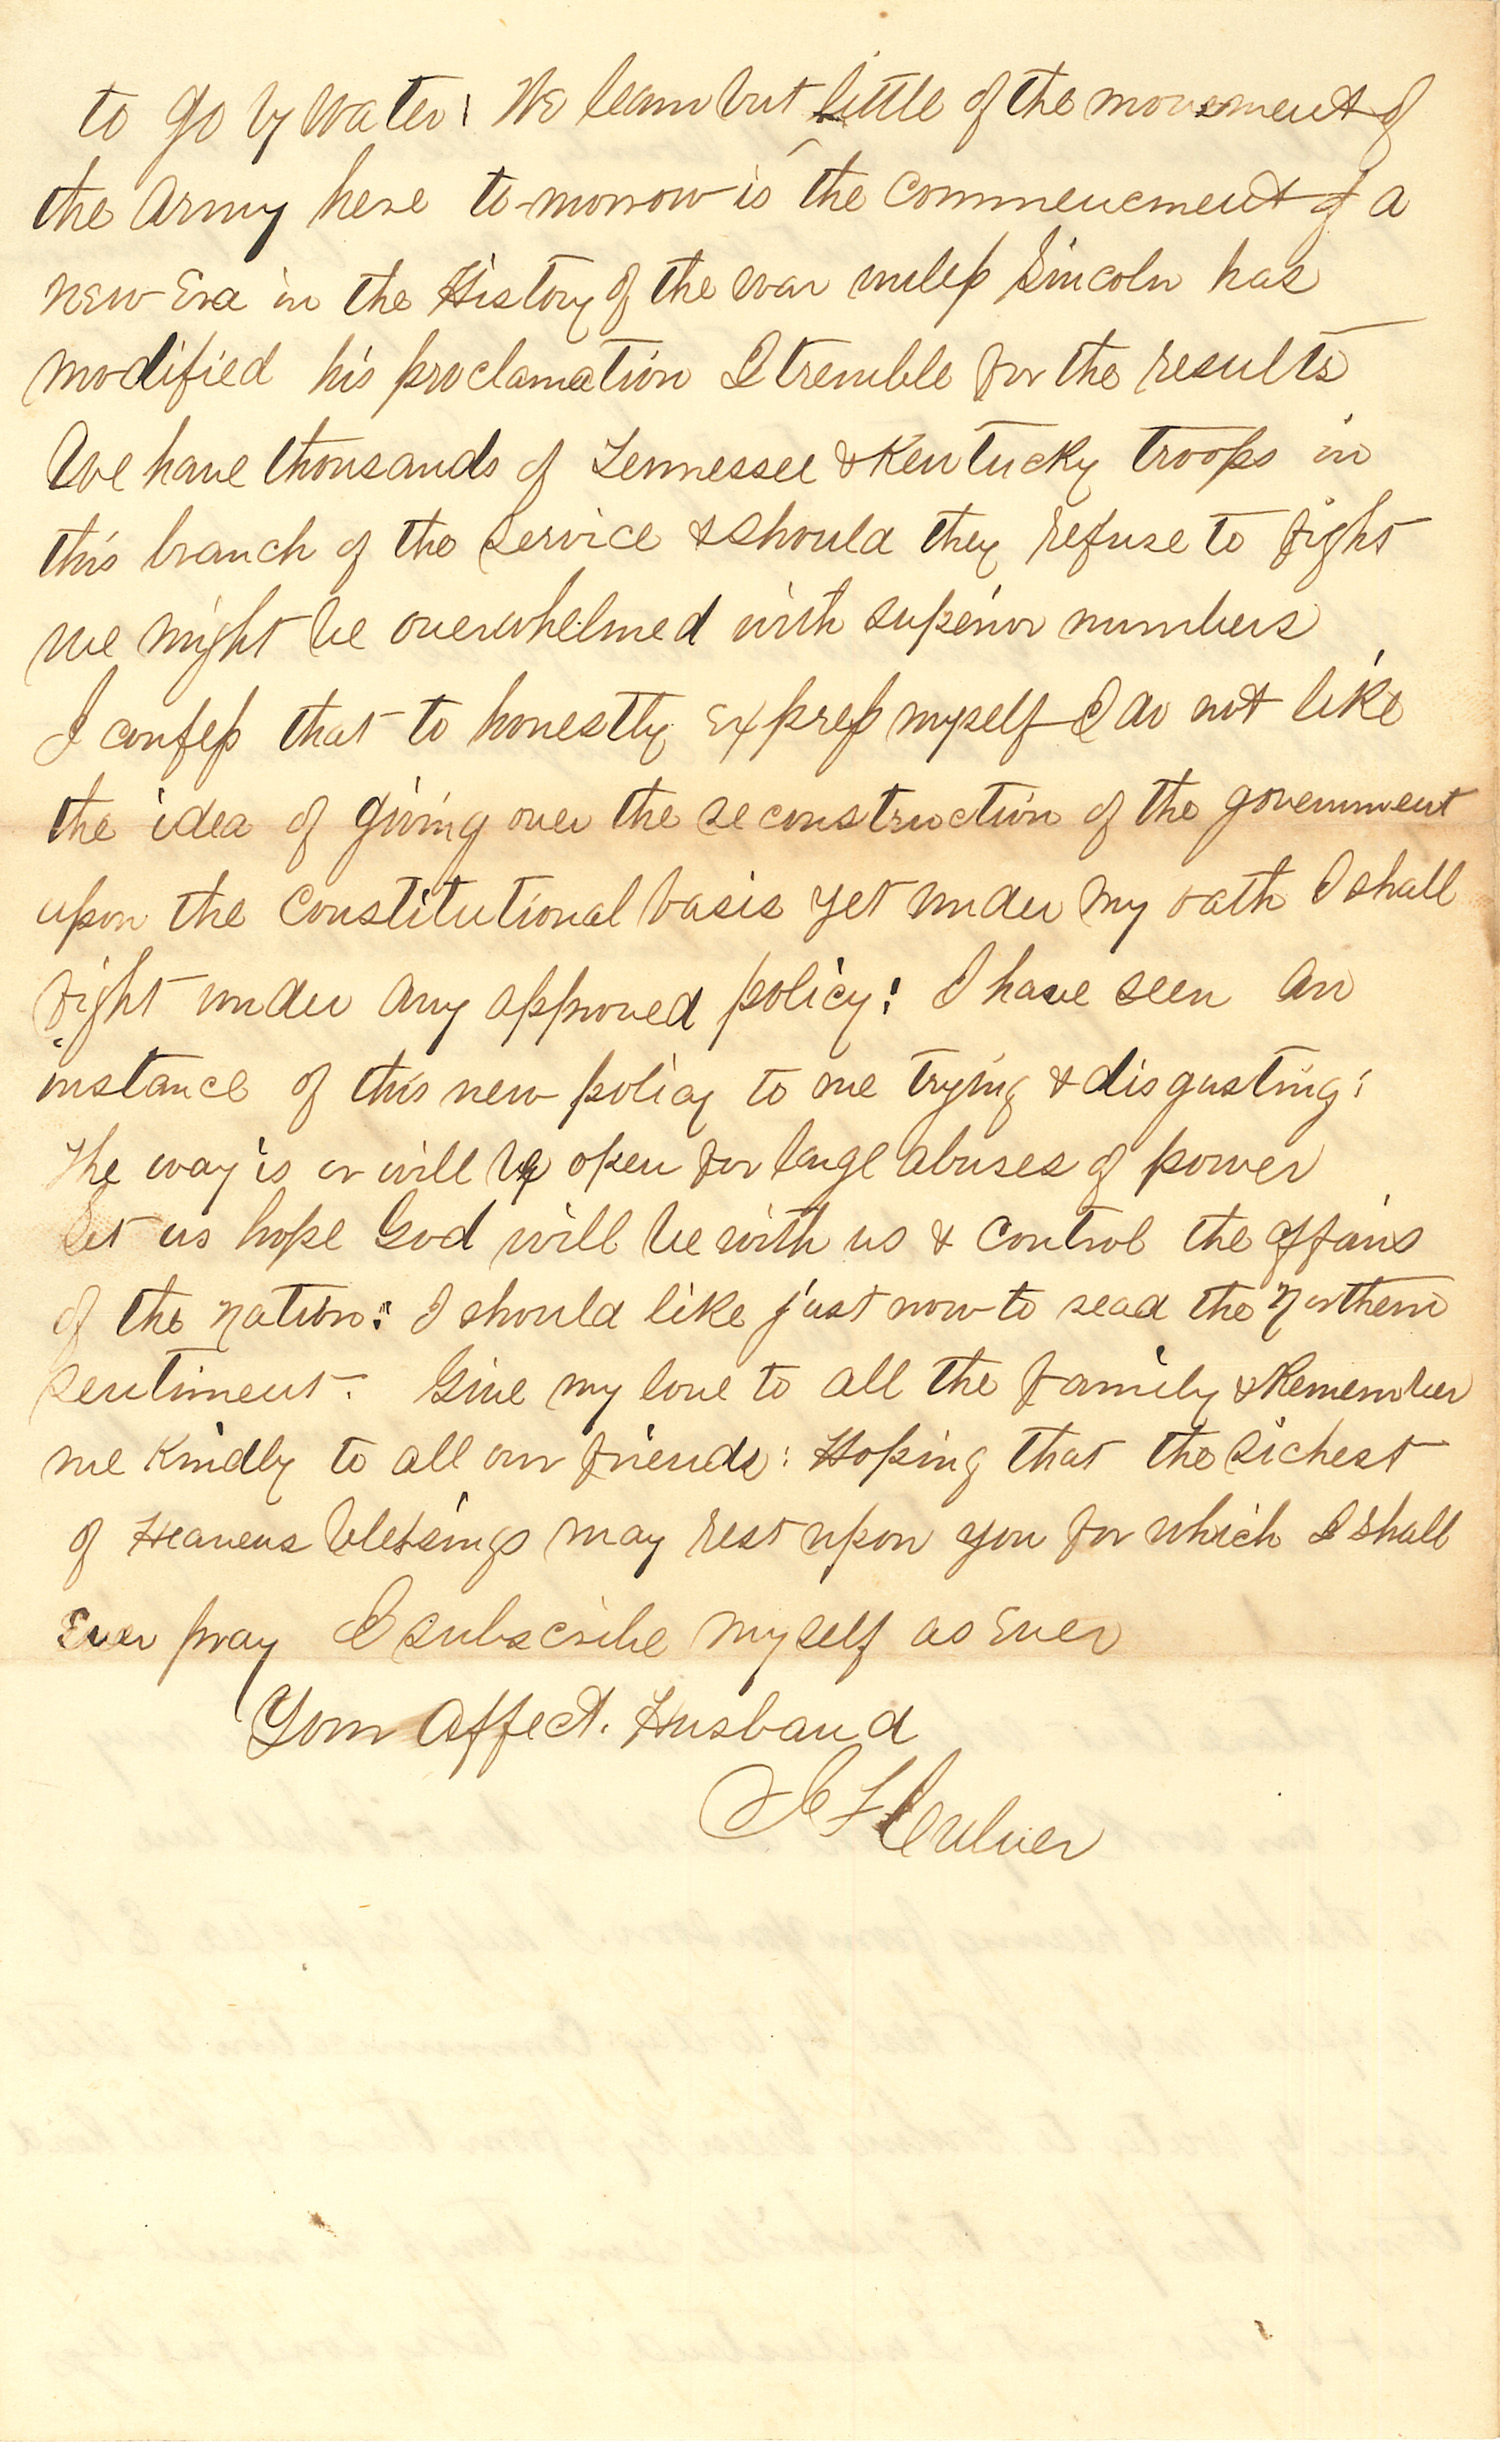 Joseph Culver Letter, December 31, 1862, Page 4